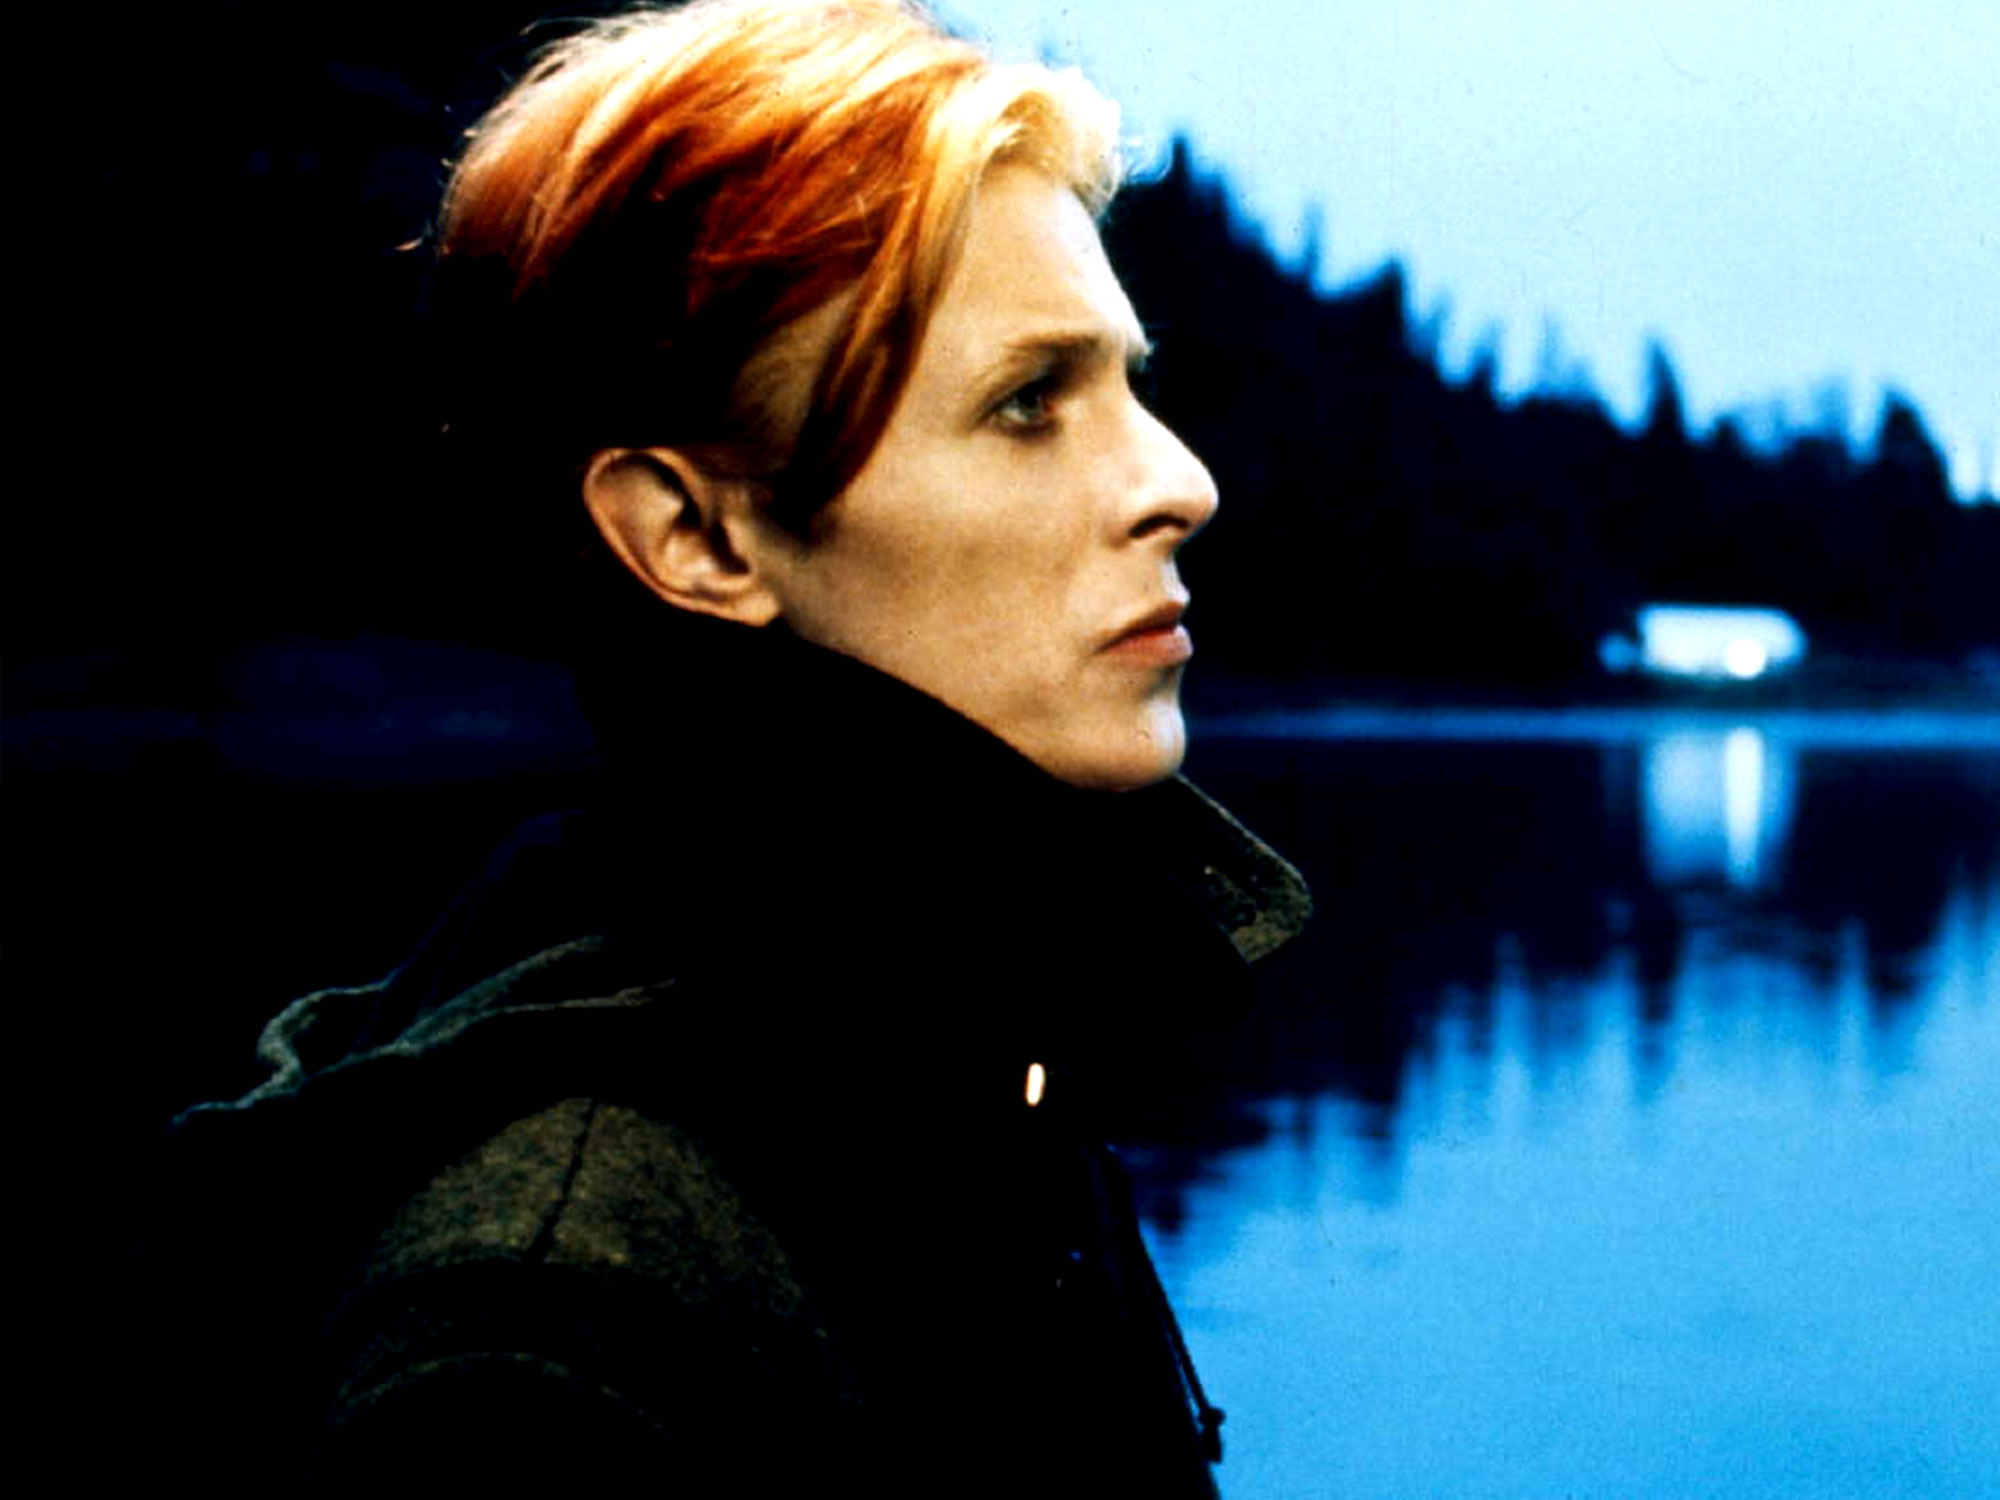 David Bowie in Nicolas Roeg's The Man Who Fell to Earth, music by Stomu Yamashta